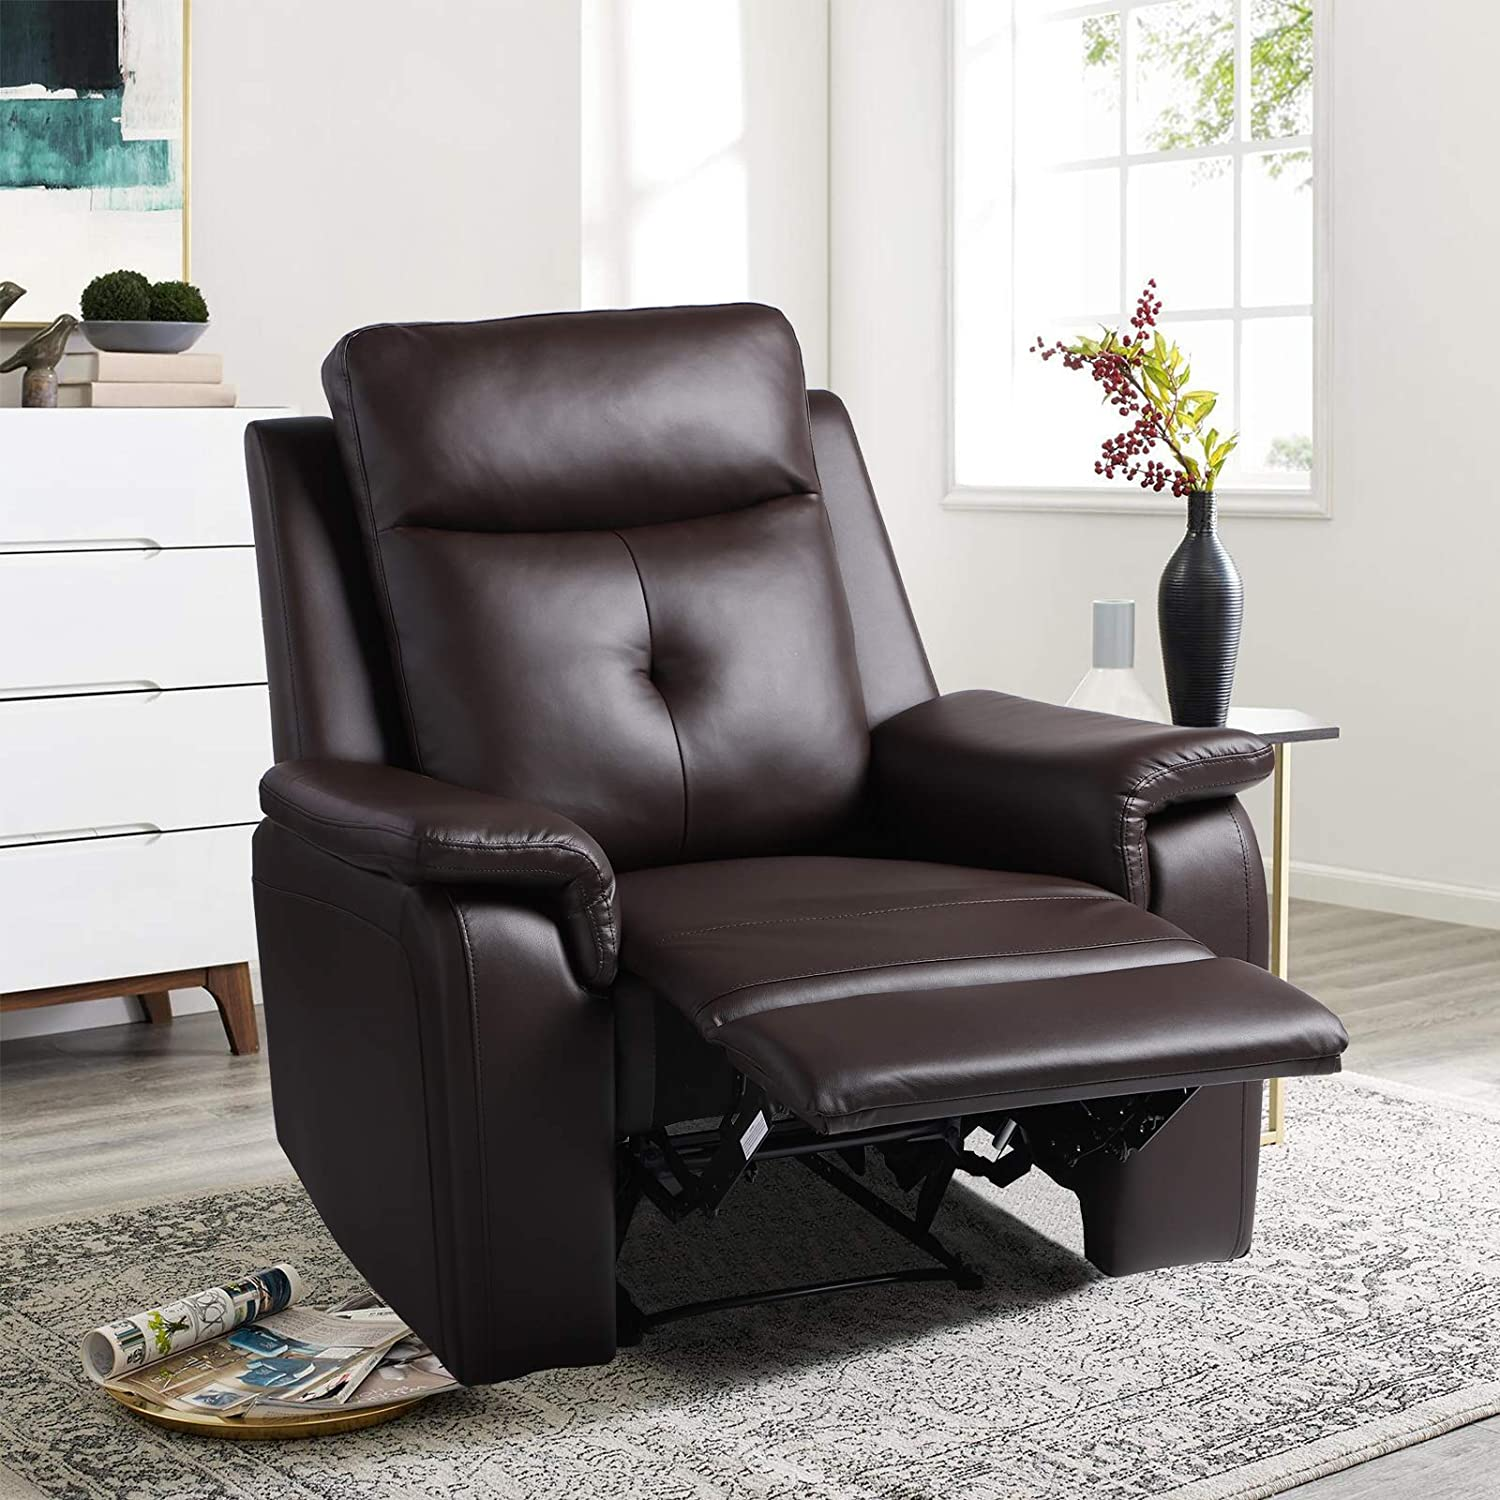 Manual Recliner Chair - Modern PU Leather Reclining Single Sofa - Ergonomic Design Home Theater Seating for Living Room, Bedroom, Home, Office (B:Brown)